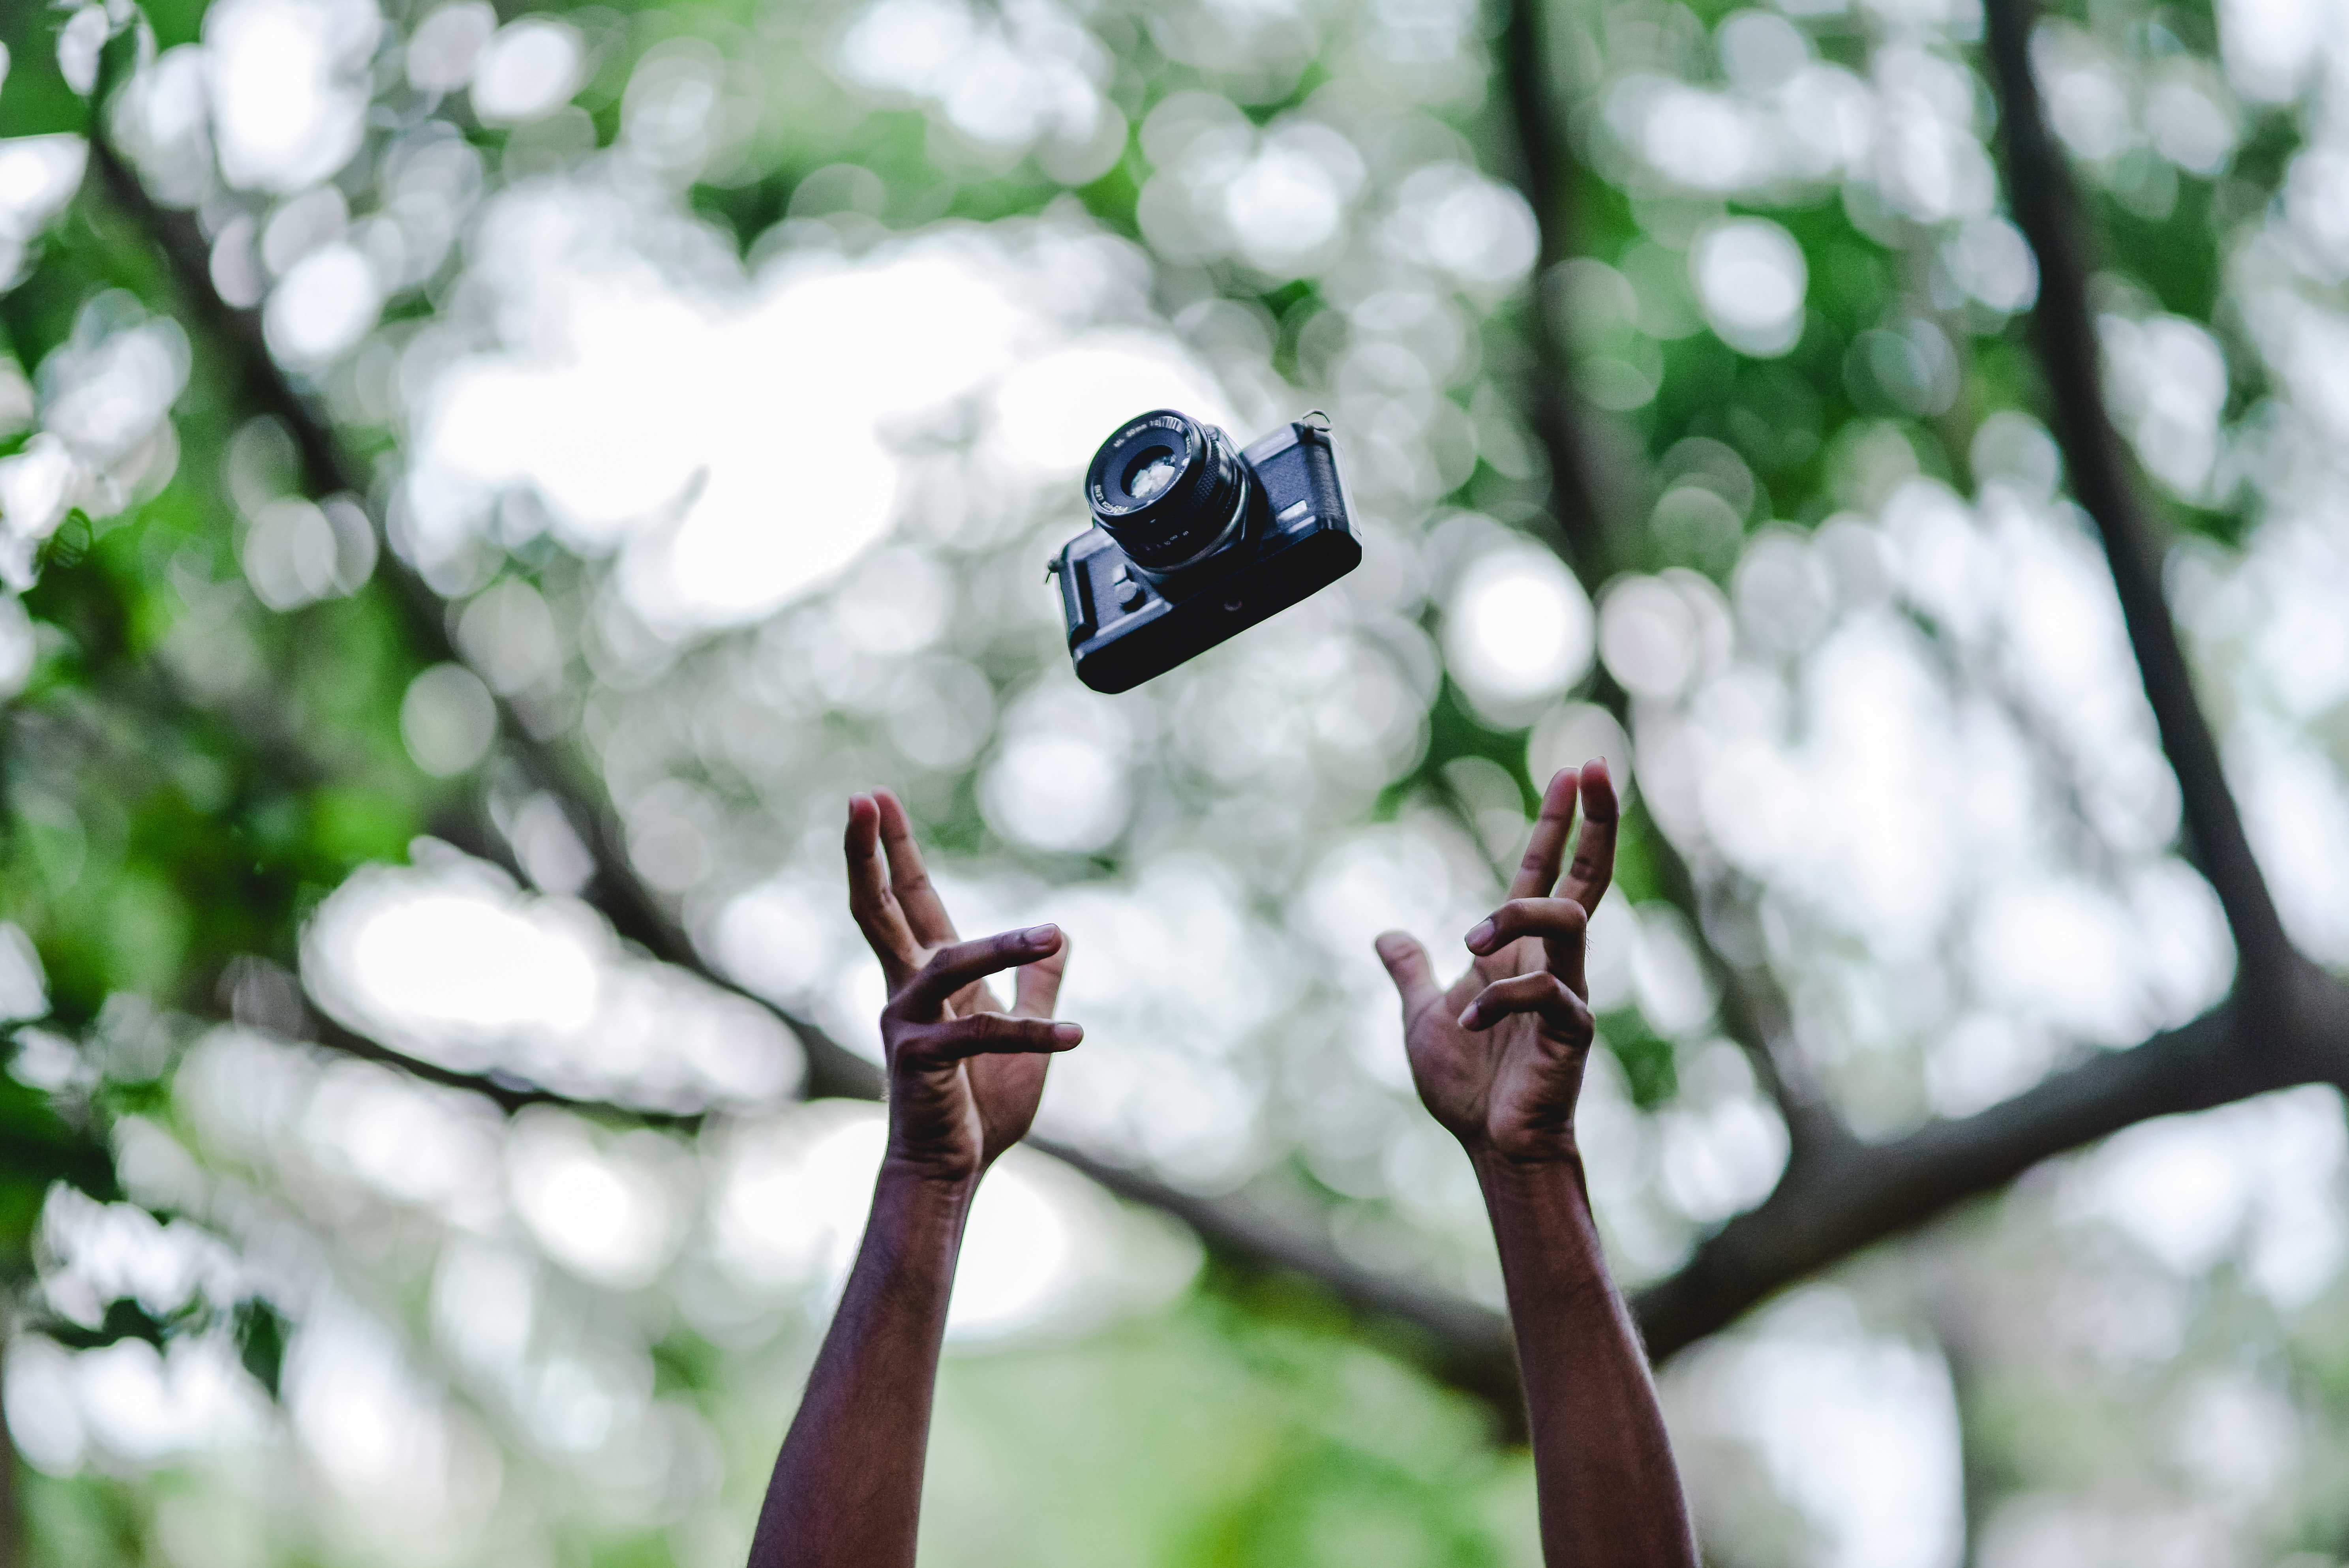 person throwing DSLR camera